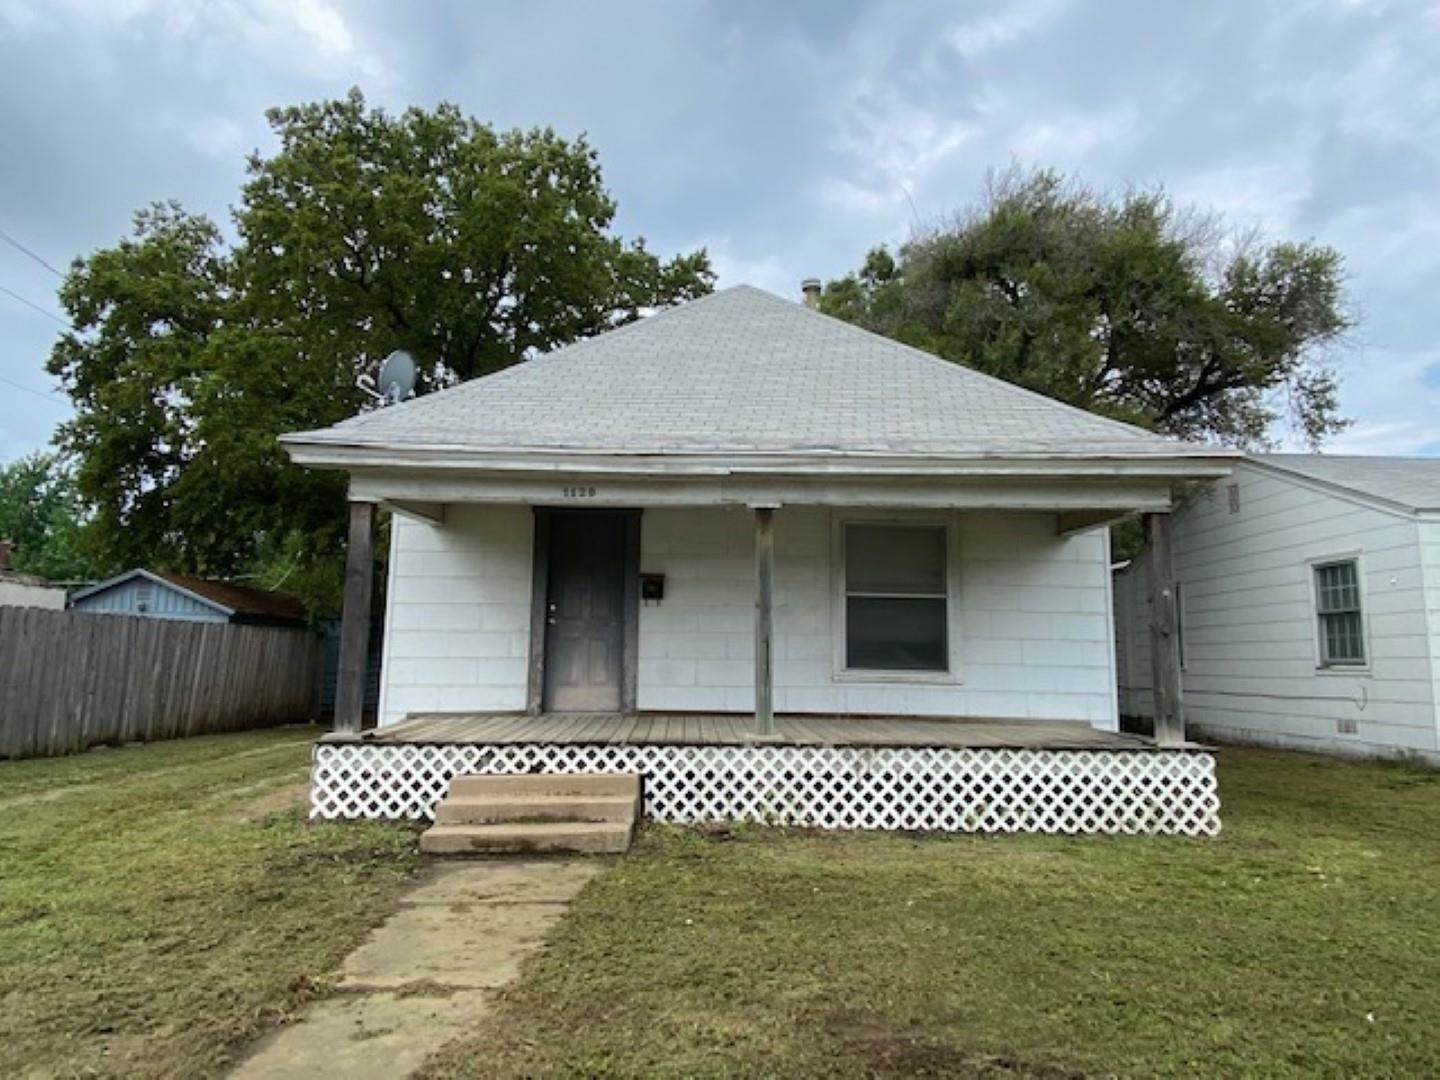 Fixer upper with great potential. Can be purchased alone or as a package along with 1121 S Seneca, 1